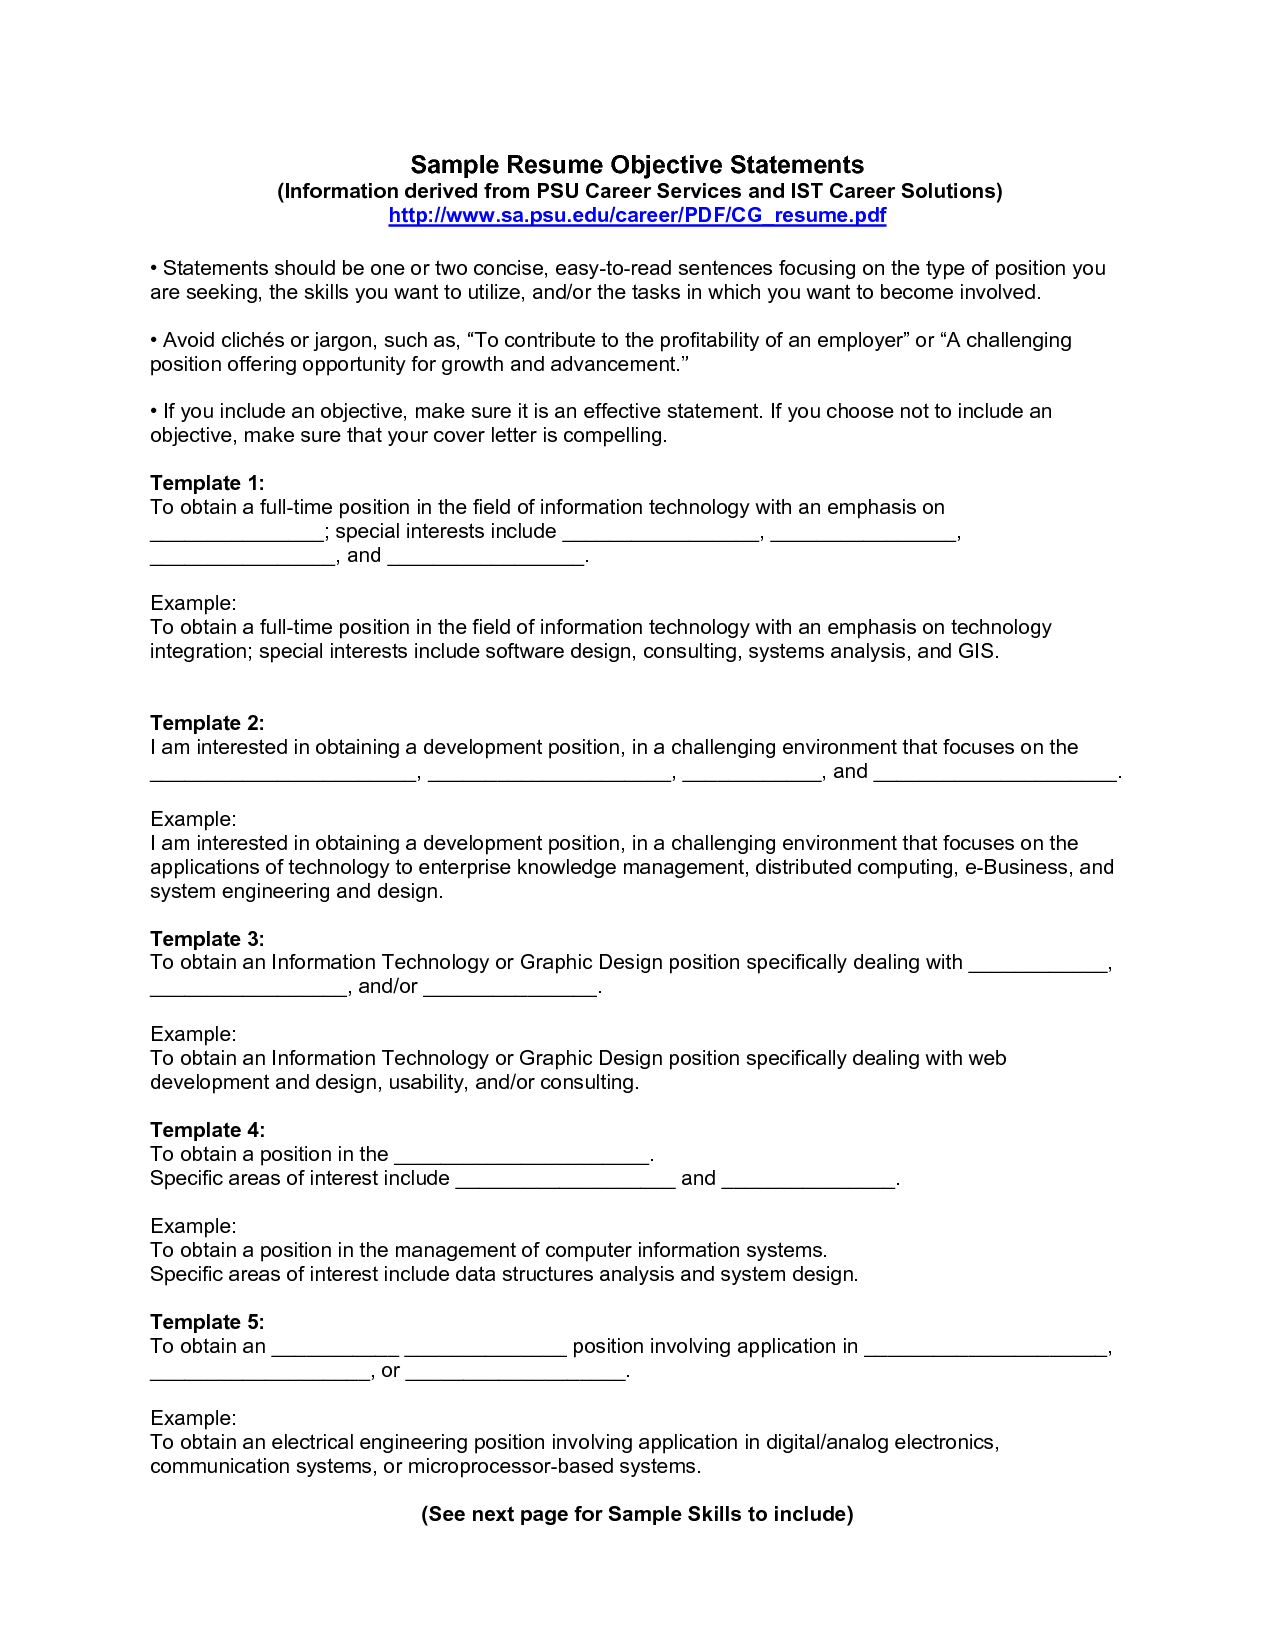 resume objective examples statement and resume career objective statement examples - Career Objective Statements For Resume